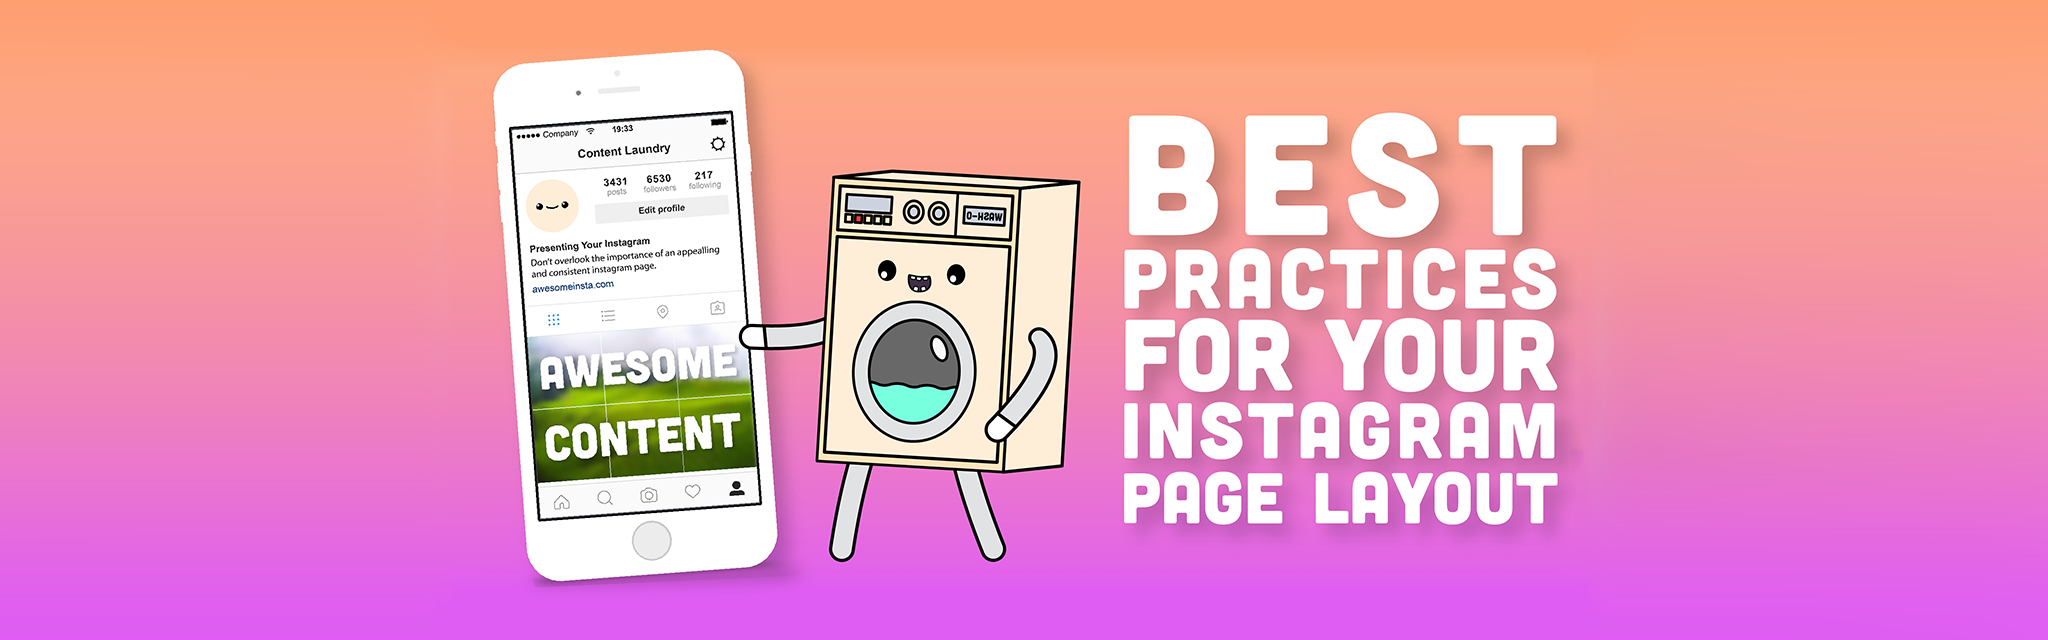 Best Practises For Your Instagram Page Layout